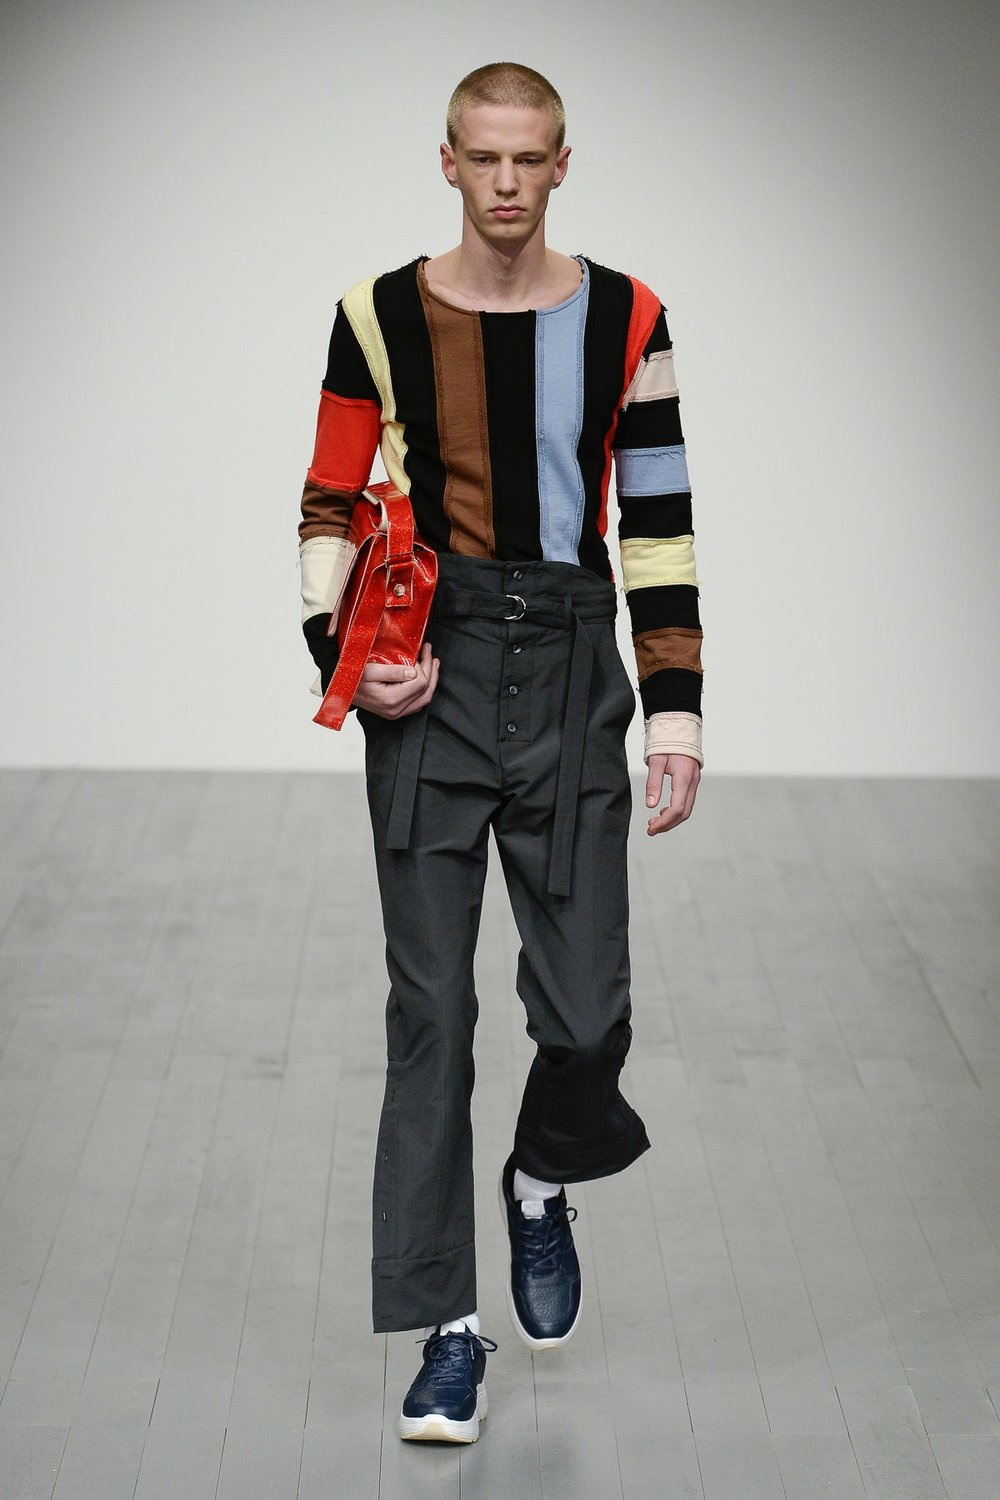 alex_mullins_look_13_menswear_autumn_2018.jpeg